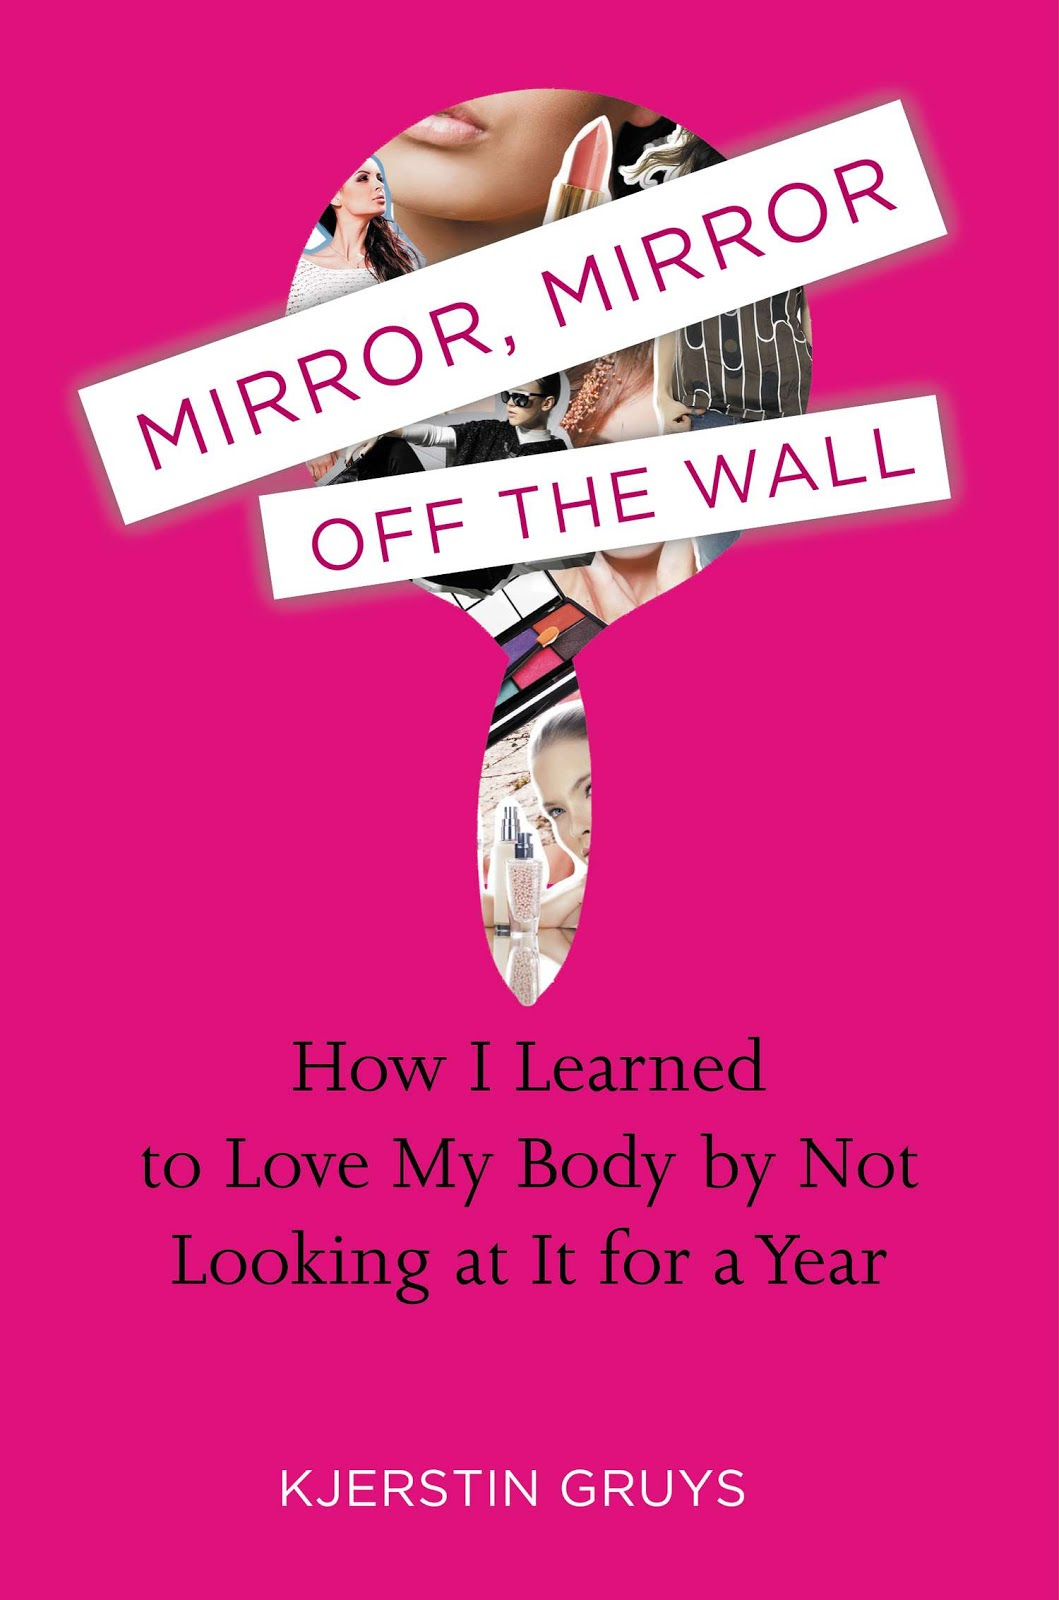 Image result for mirror mirror off the wall